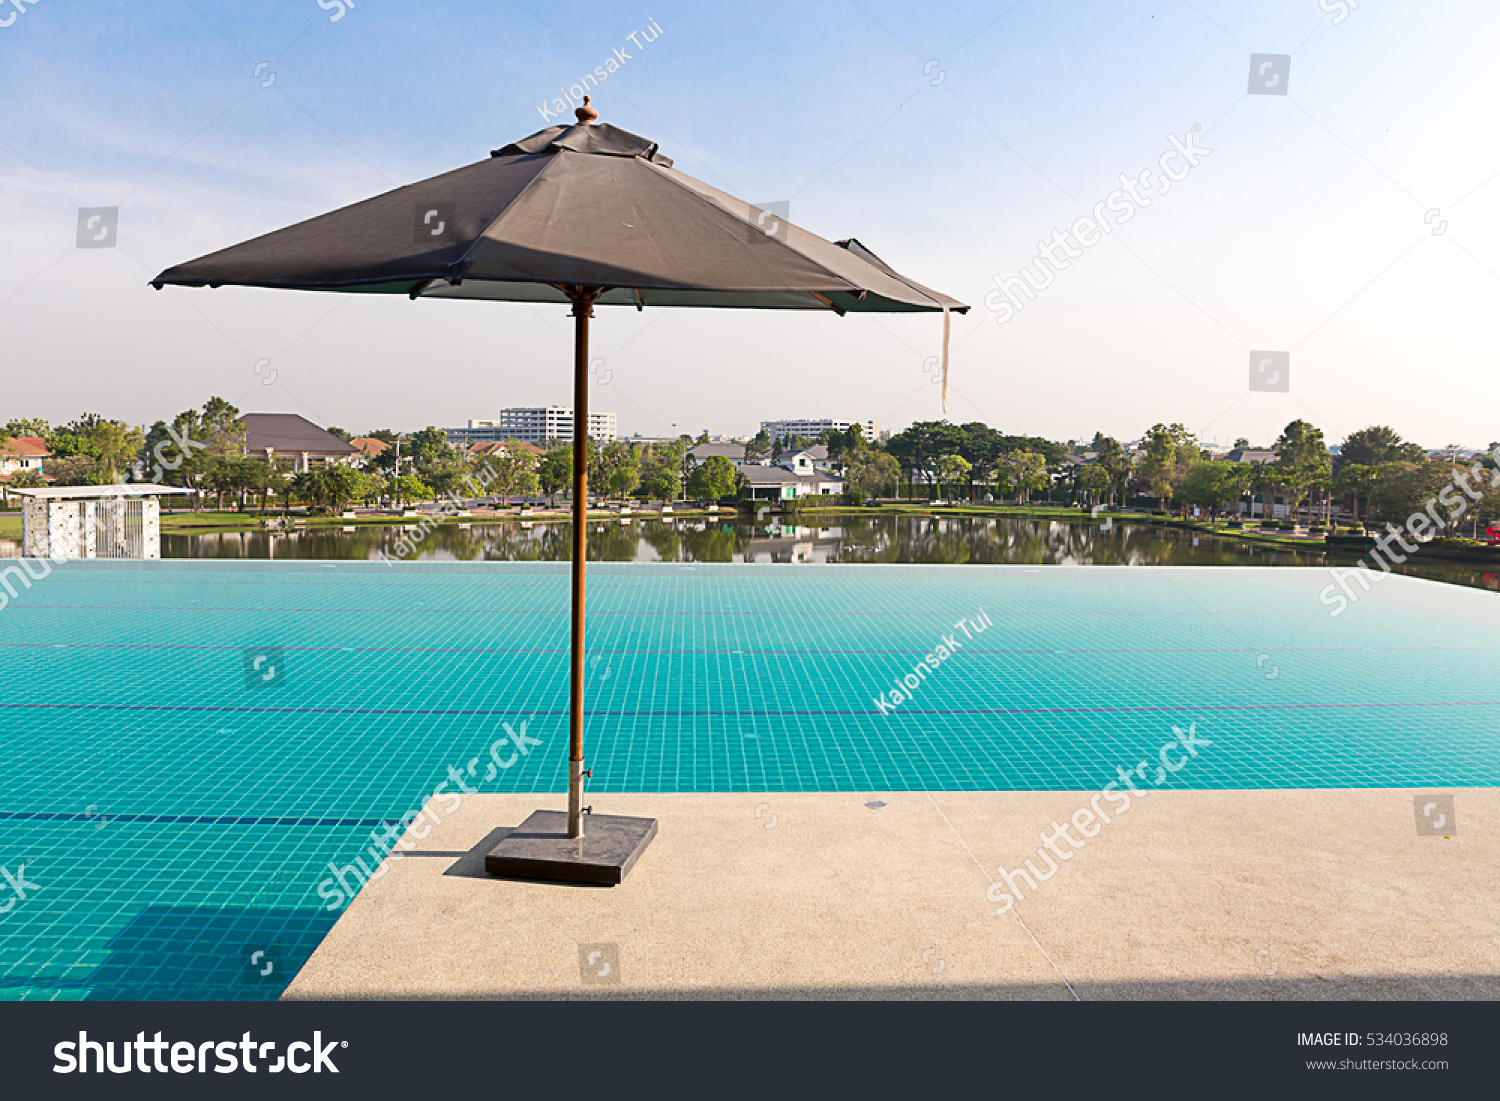 Umbrella service in upper deck swimming pool in luxury village with beautiful sky at morning. #534036898